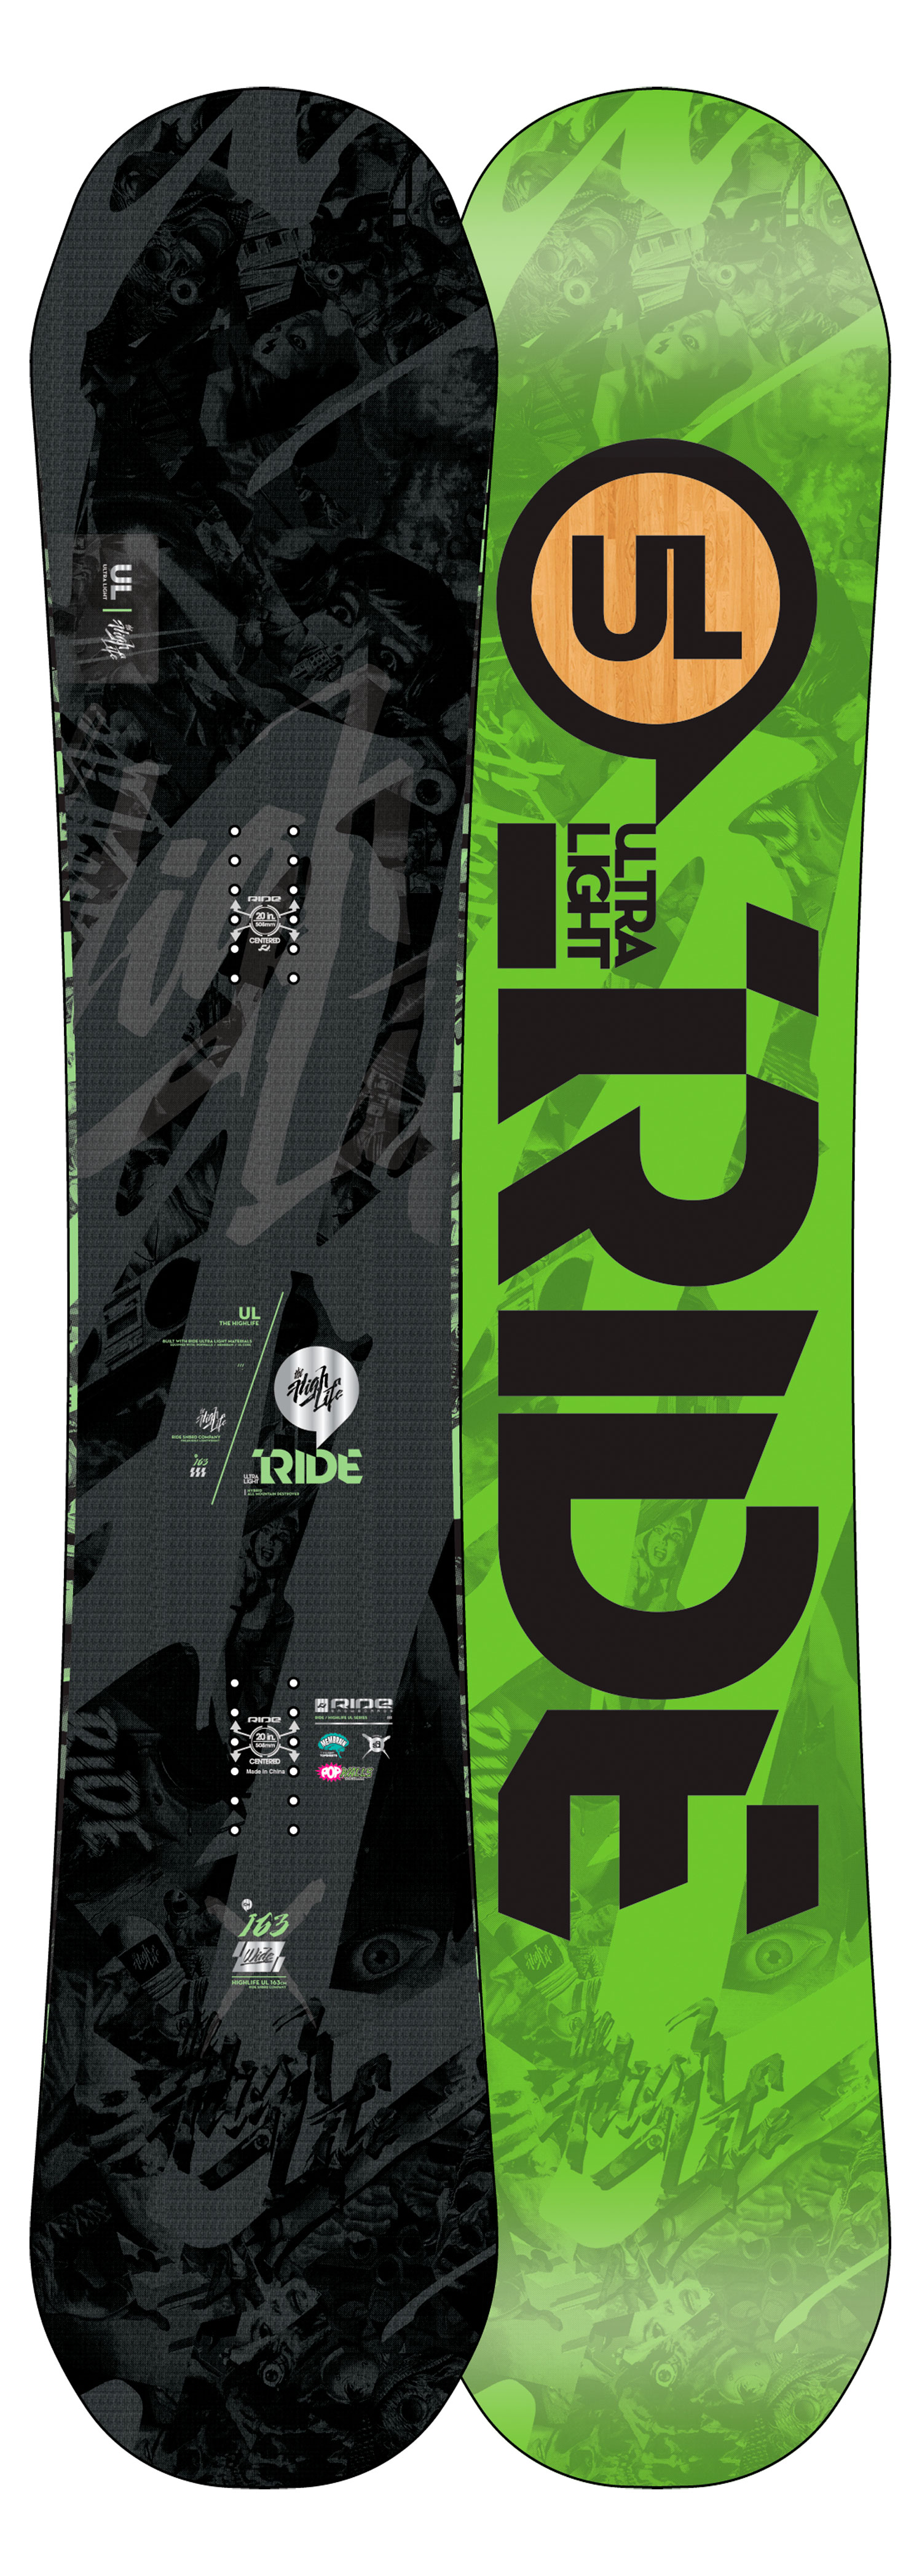 "Snowboard JUMP ABOARD THIS INTOXICATING RIDEDebuting the latest in sidewall technology, the Highlife UL showcases our potent new Popwalls that combine our urethane Slimewalls with our carbon Pop Rods for the max in pop and enhanced response. The Highlife UL also features our Hybrid All Mountain shape boasting a loose and playful rocker in the tip, and the grippy stability of camber under foot and through the tail. Complete with all of our latest UL techs, Membrain fabric top sheet and Carbon Array 5, this versatile directional deck is truly an all mountain masterpiece that ride's effortless in pow, is fun cruisin' with the crew or maching laps at warp speed. Key Features of the Ride Highlife UL Wide Snowboard: Feel: 9 All Mtn 3/4"" Setback Stance Hybrid All Mountain NEW! Popwalls Silencer 5 Carbon Array 5 Membrain UL Base Pop Glass UL Steel UL Core 2 x 4 Inserts - $398.95"